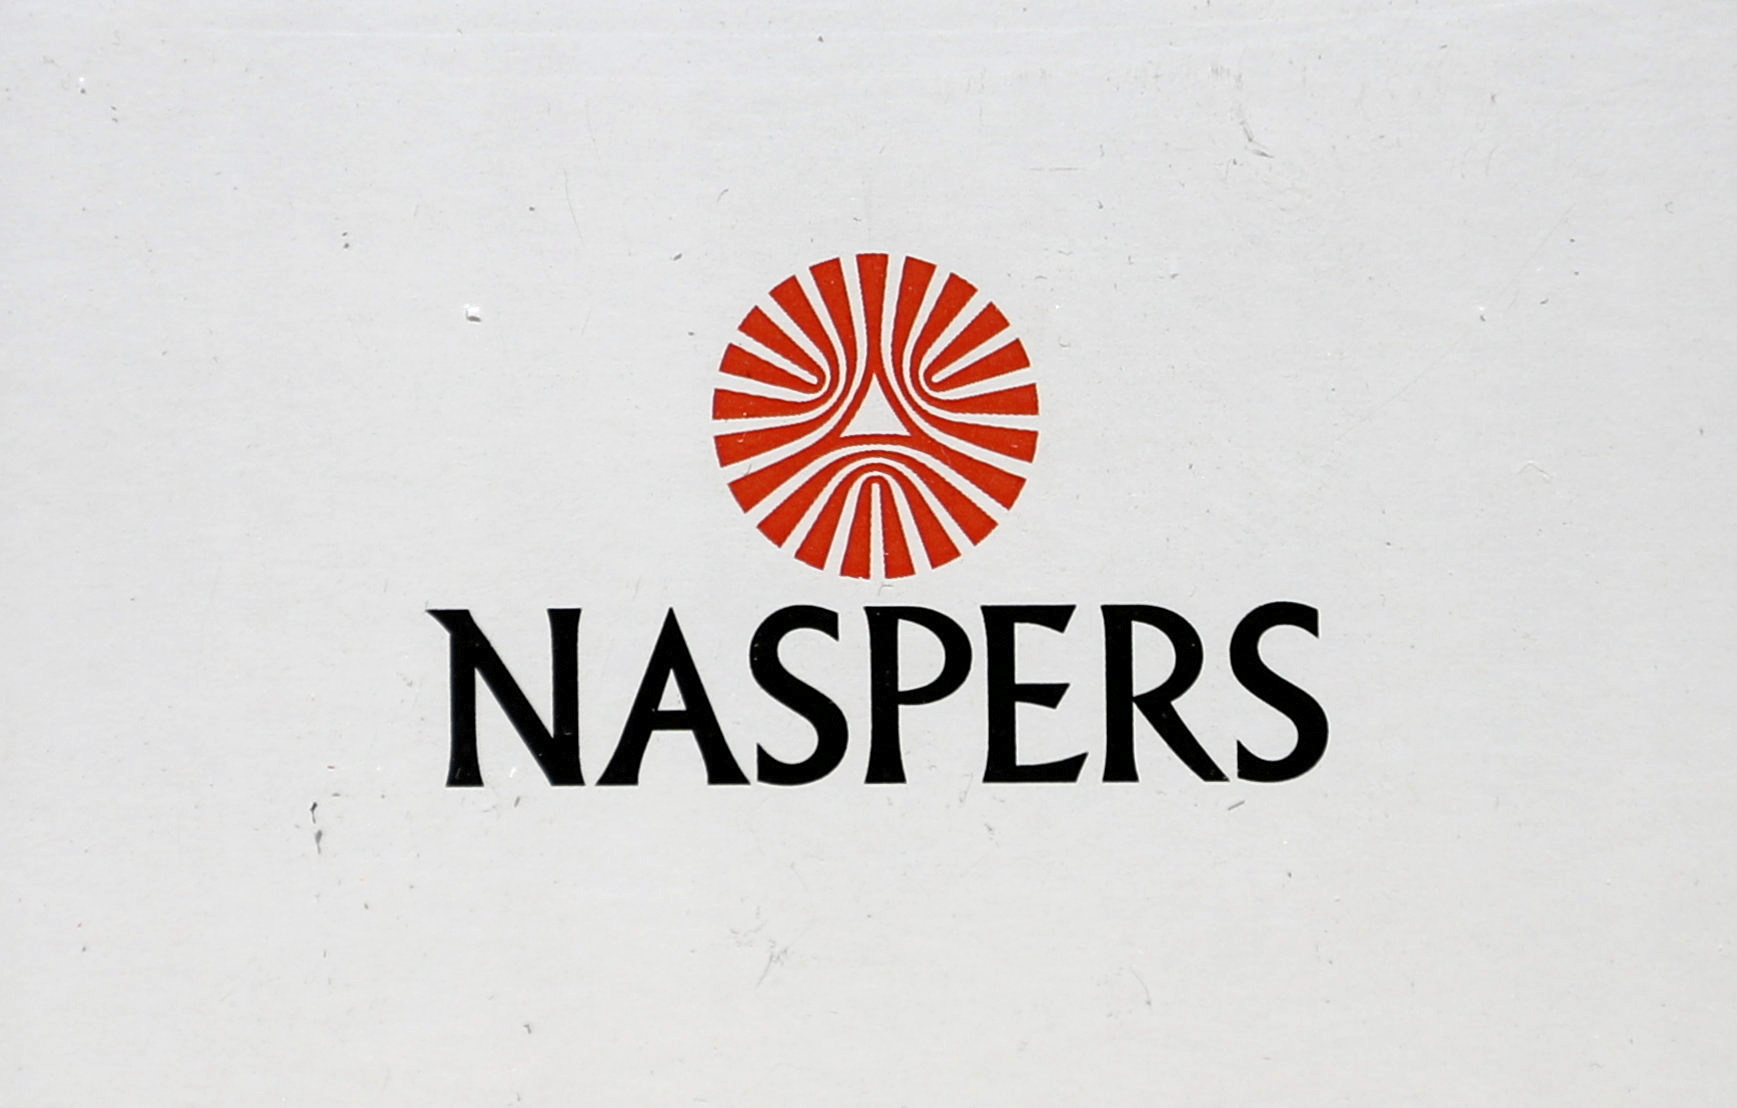 Naspers logo is seen in Johannesburg, South Africa, October 9, 2019. REUTERS/Siphiwe Sibeko/File Photo/File Photo